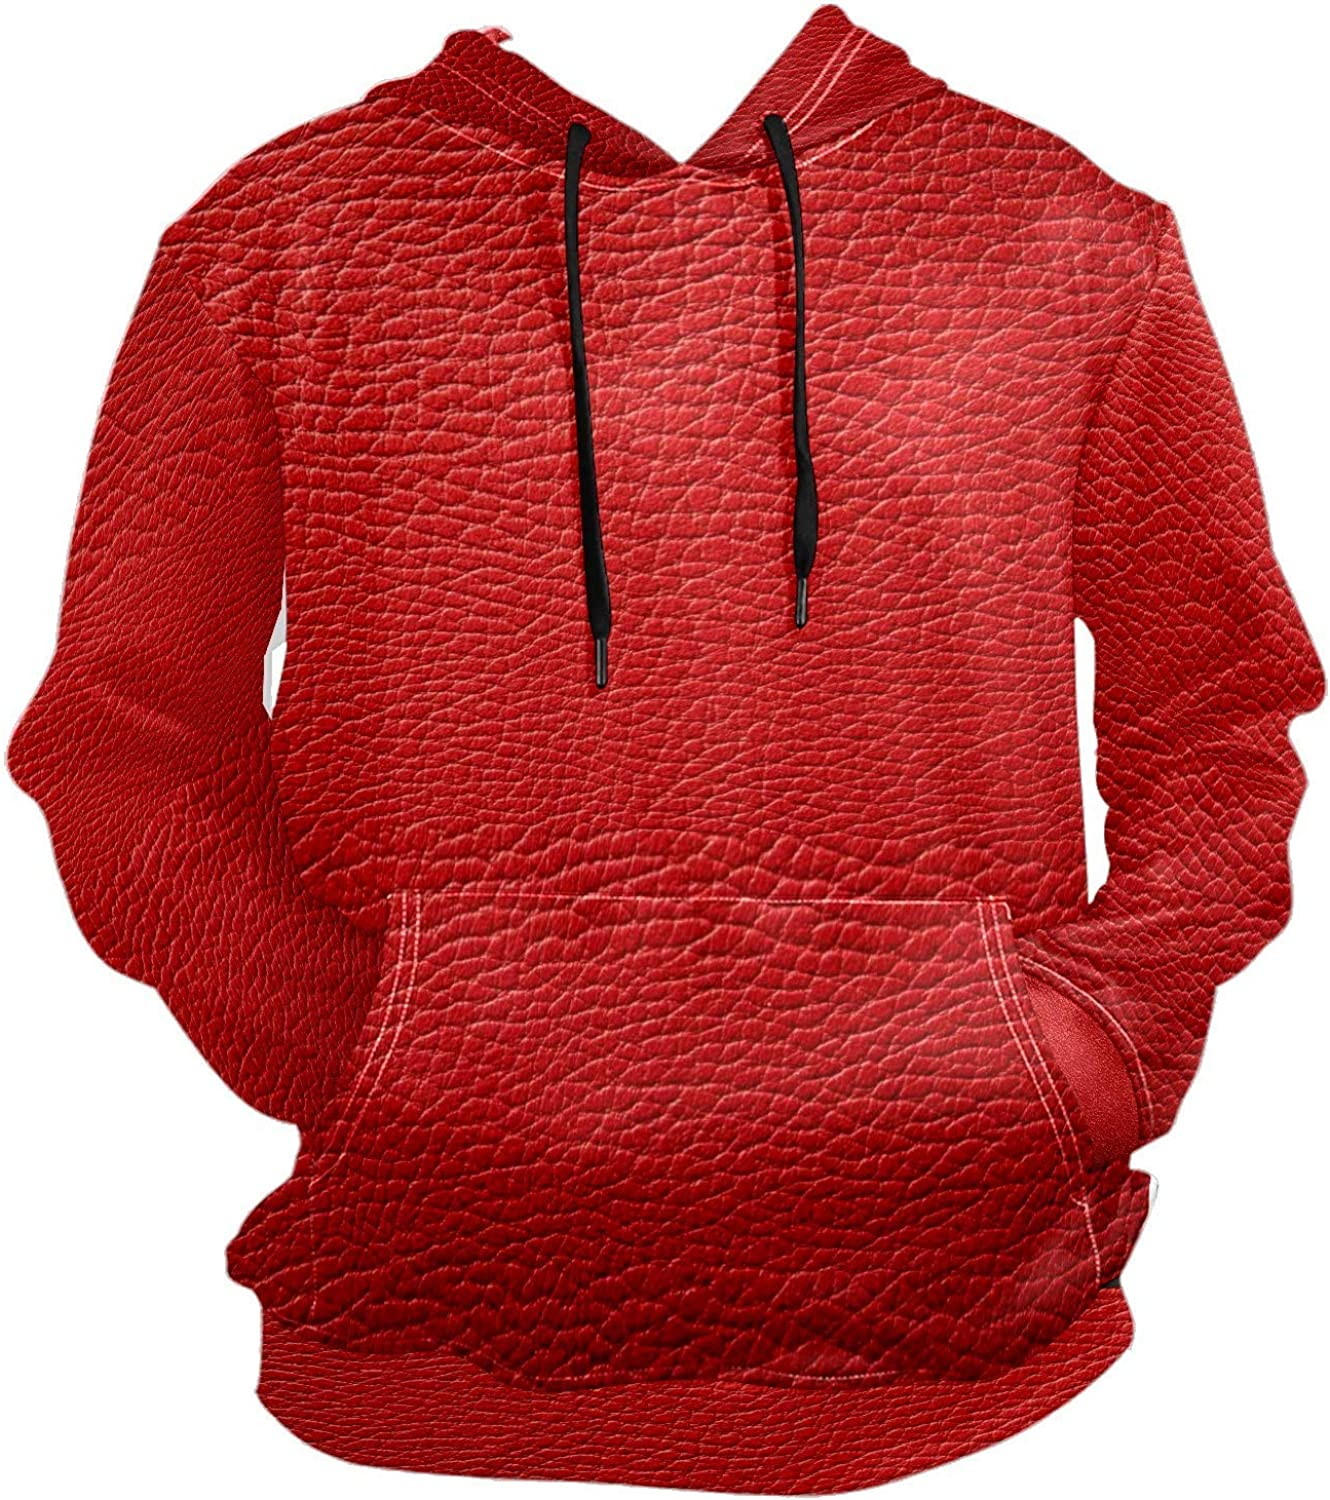 Men's Sport Hoodie Leather Red Big and Tall Hoodies for Men Women Oversized Hooded Sweatshirt Hip Hop Pullover Hoodie Midweight Hood for Boys Girls